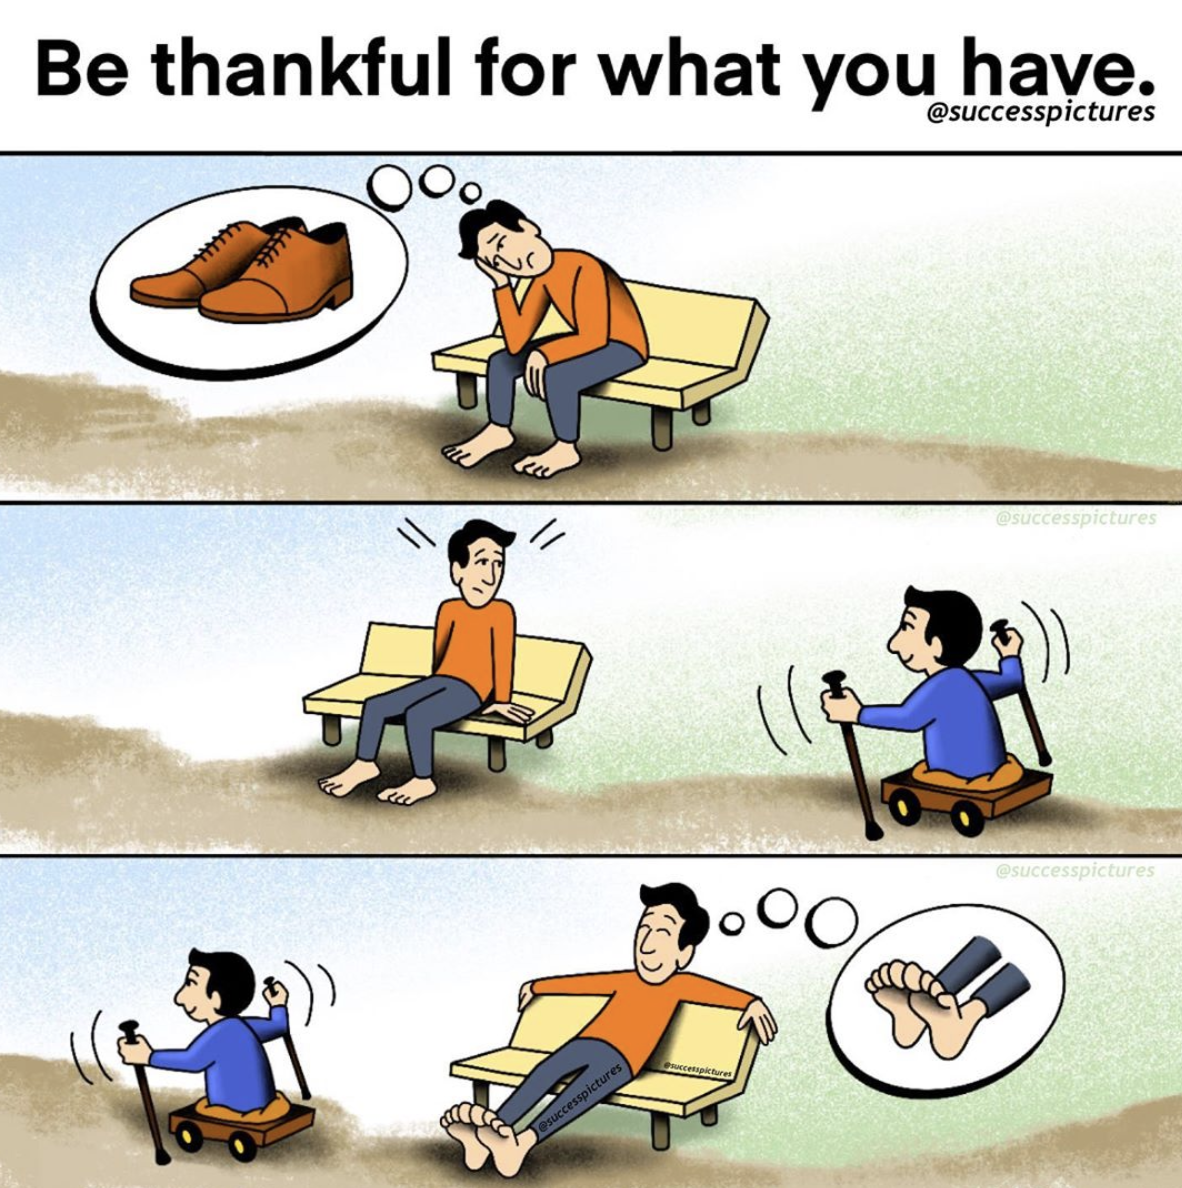 [Image] Being thankful for what you have rather than envious of what you don't have makes all the difference in life.